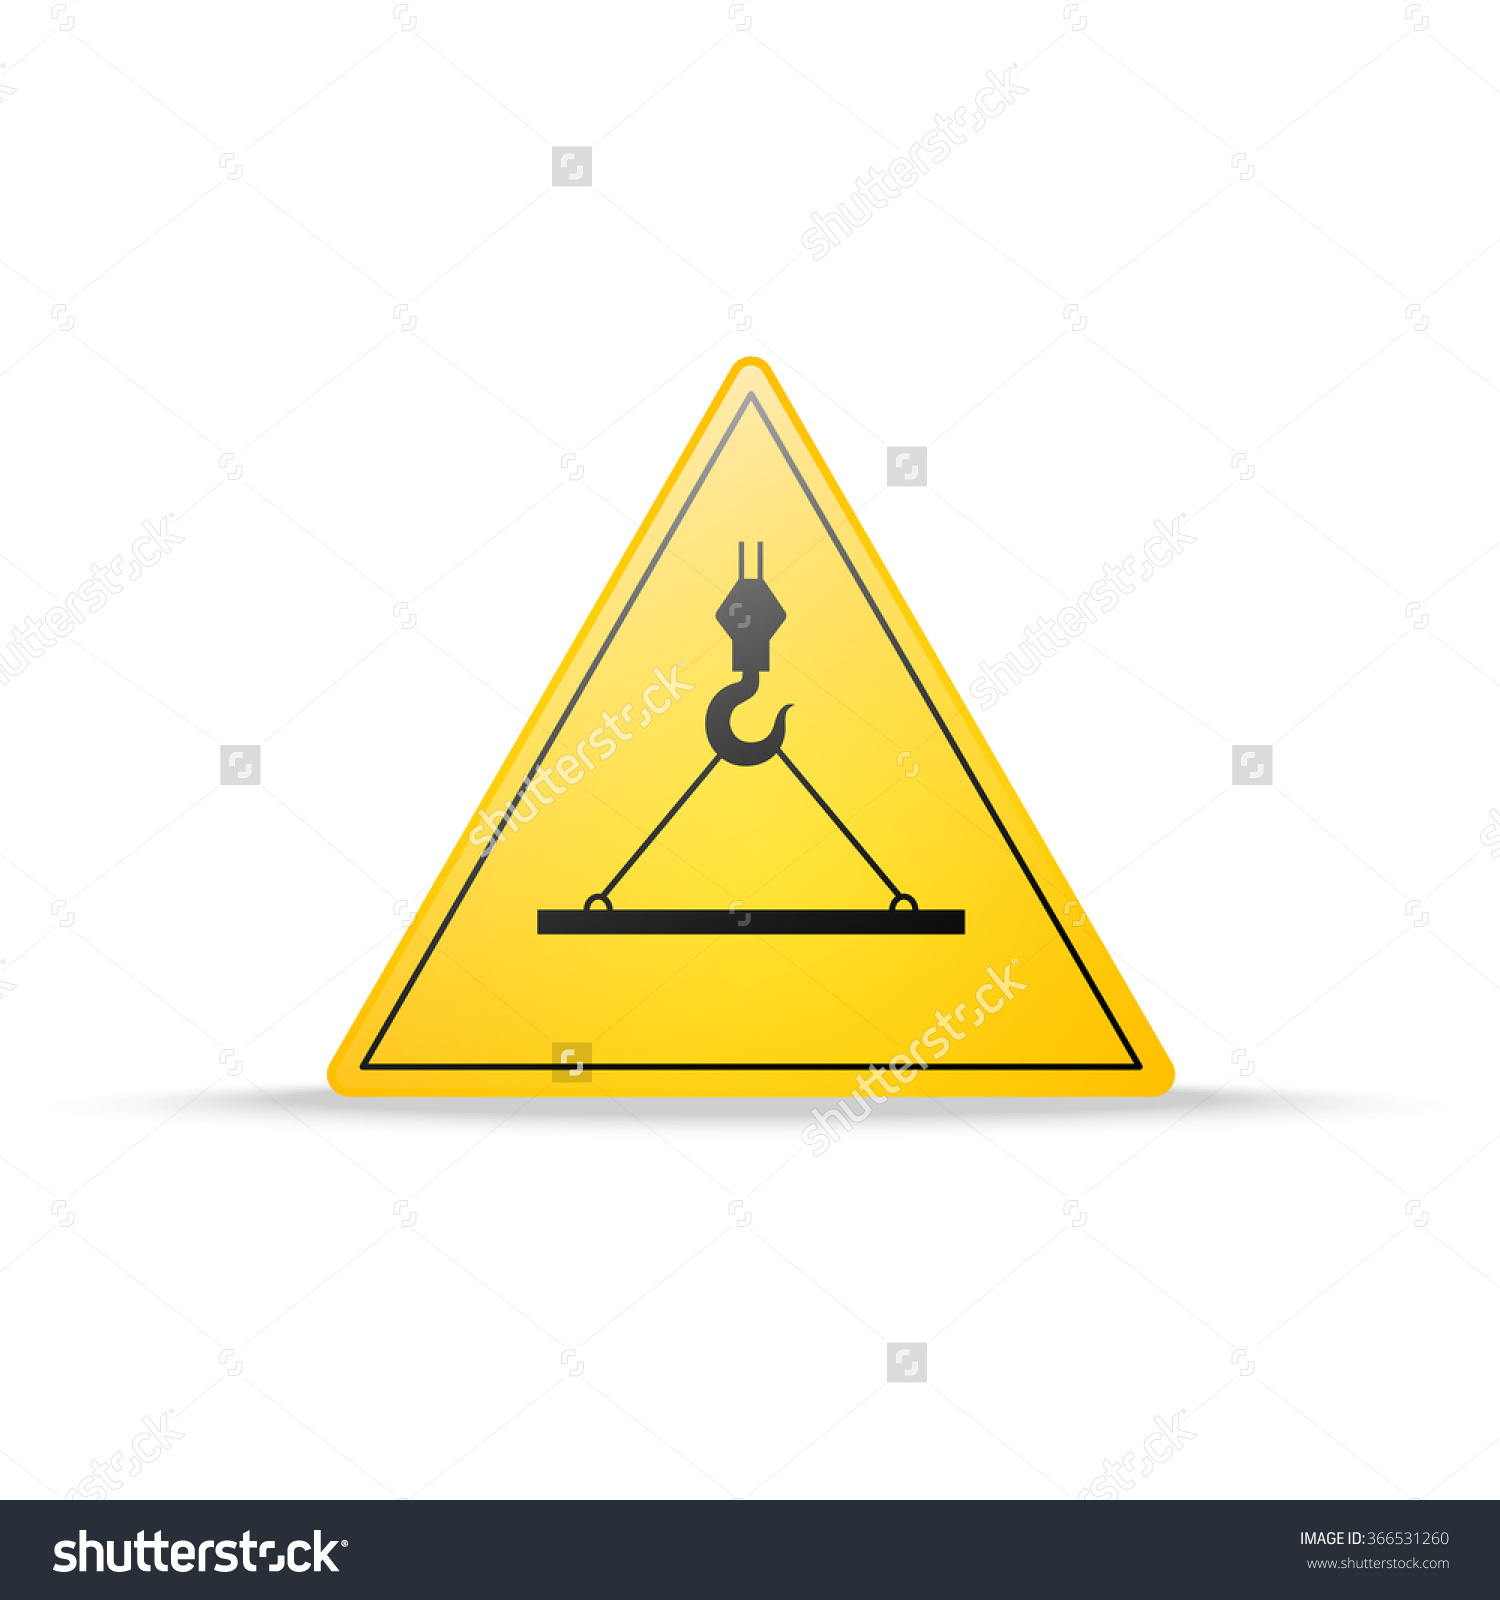 Warning Sign Crane Hazard Suspended Load Stock Vector 366531260.